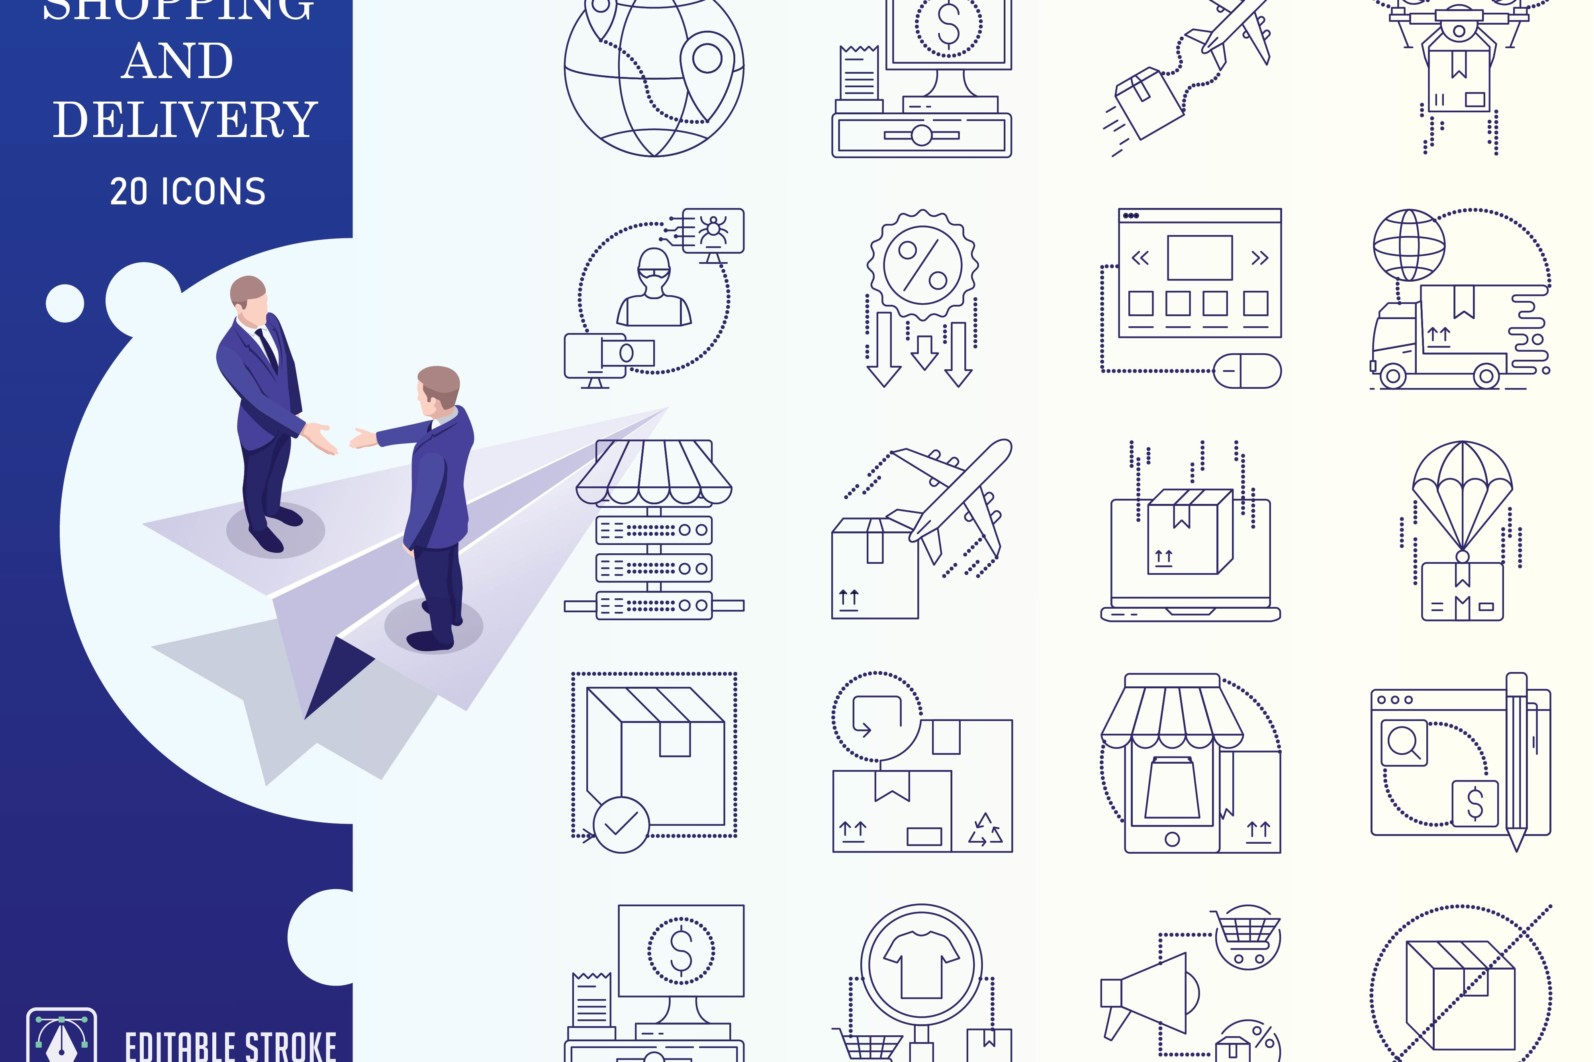 Outline : Shopping and E-commerce - Online Shopping Iconset 01 3 scaled -